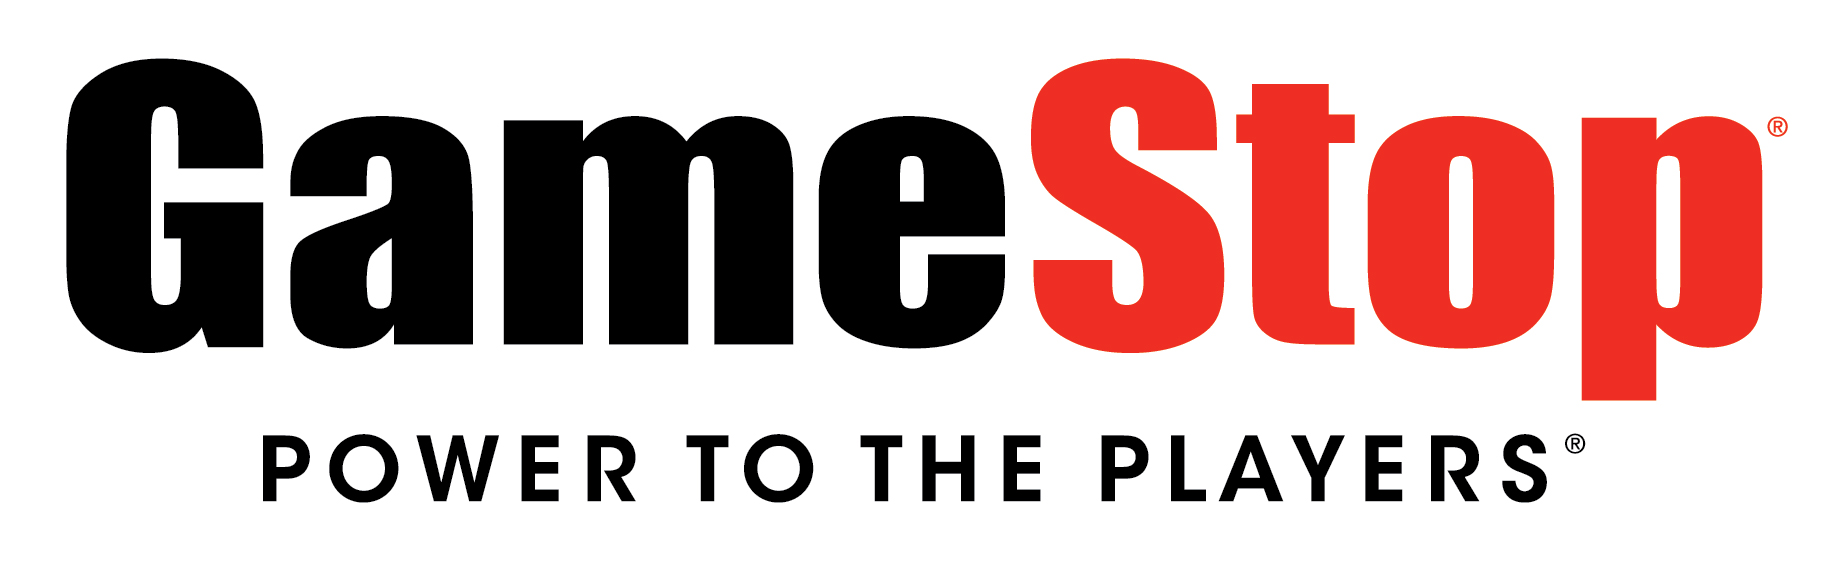 gamestoplogo-blackred.jpg